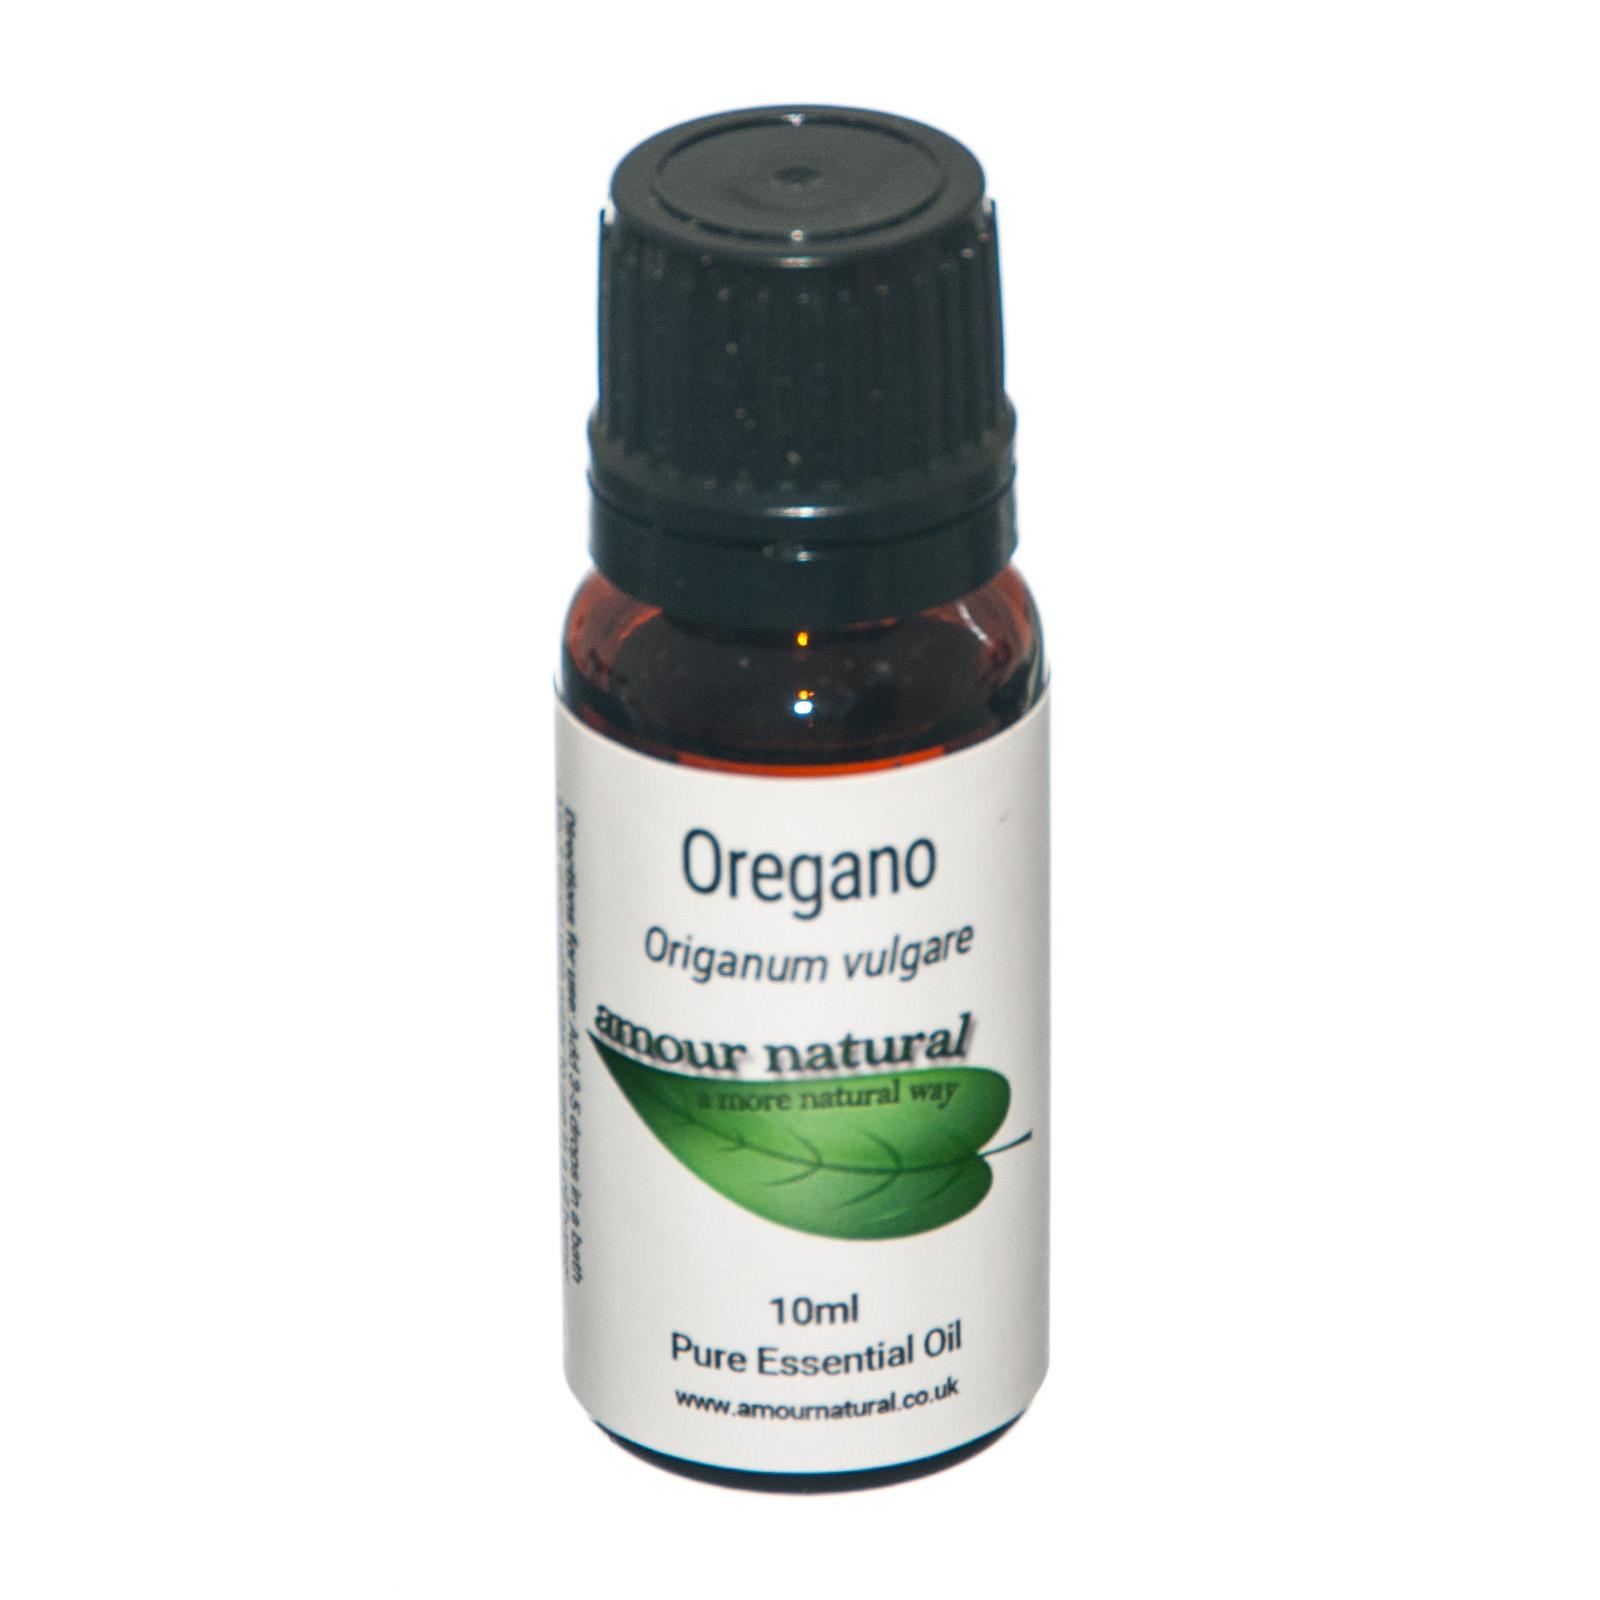 1 x 10 ml bottle of Oregano Essential Oil